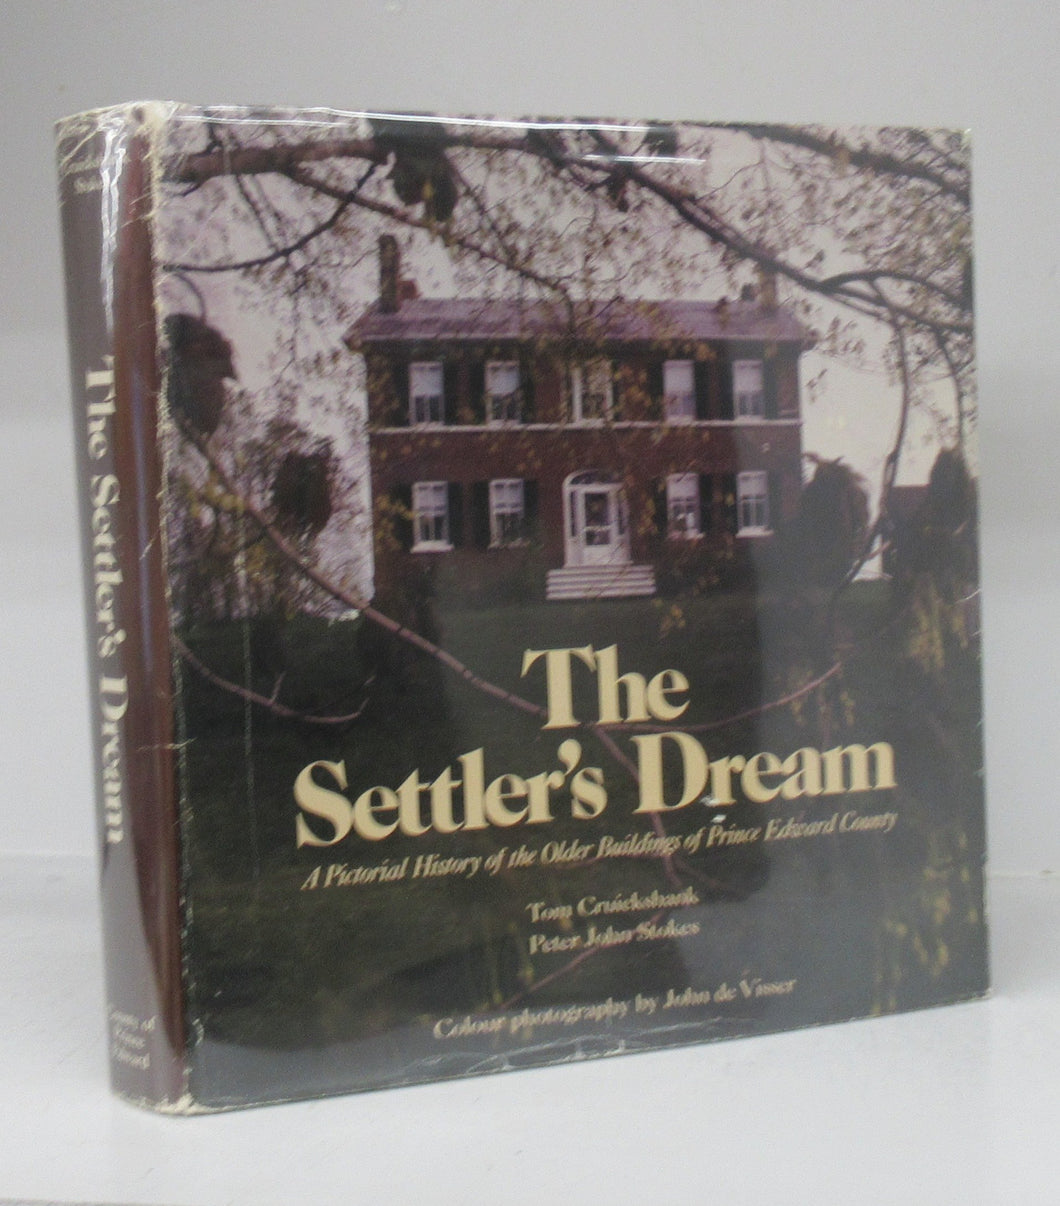 The Settler's Dream: A Pictorial History of the Older Buildings of Prince Edward County